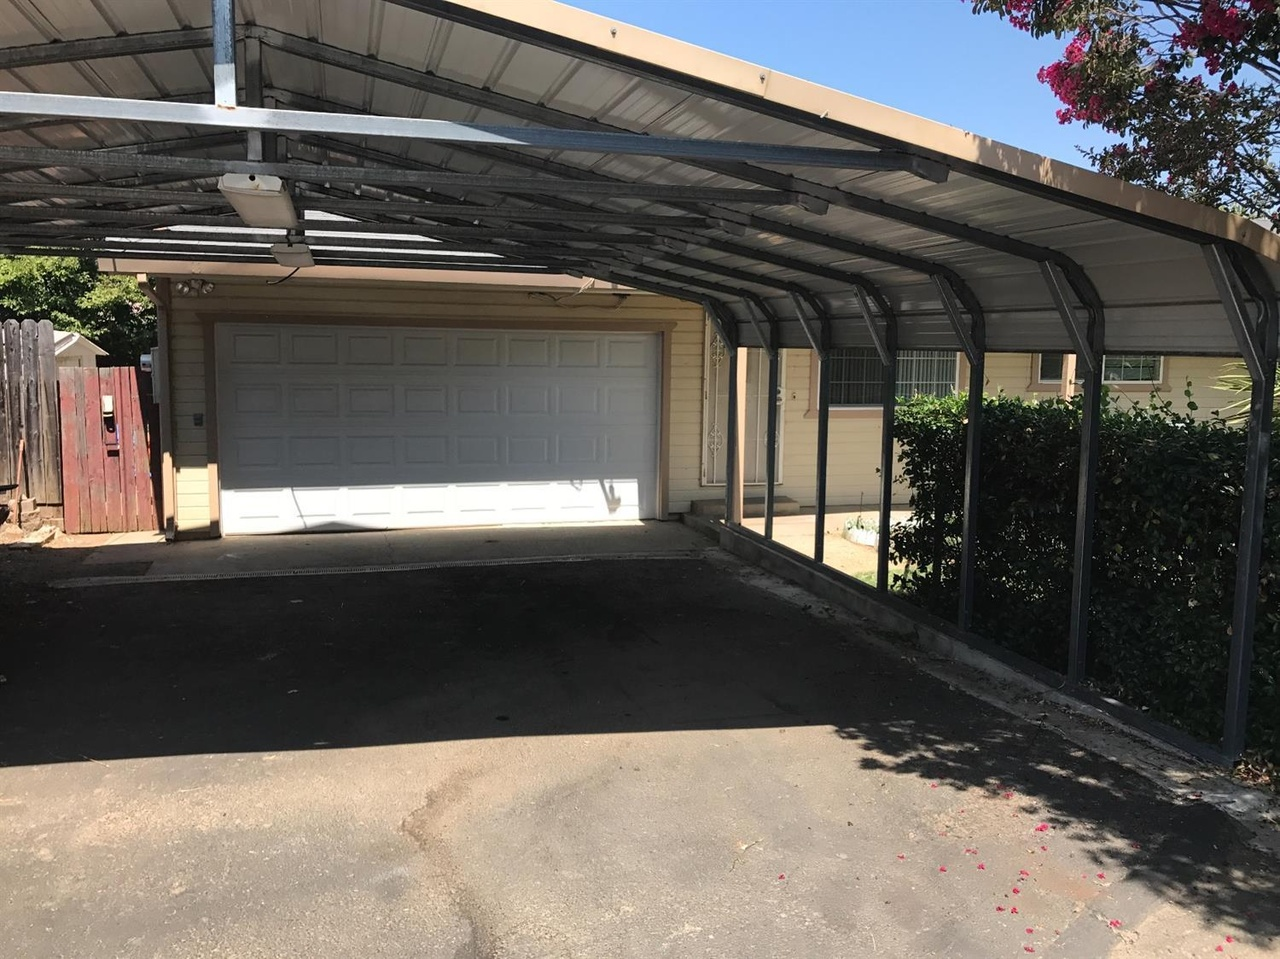 mobile homes for sale in auburn ca with 19554429 on Burke County GA further 1987 Fleetwood Jamboree Rallye 24 Motorhome Rv Class C 31505153 moreover 6 additionally  together with 19552356.